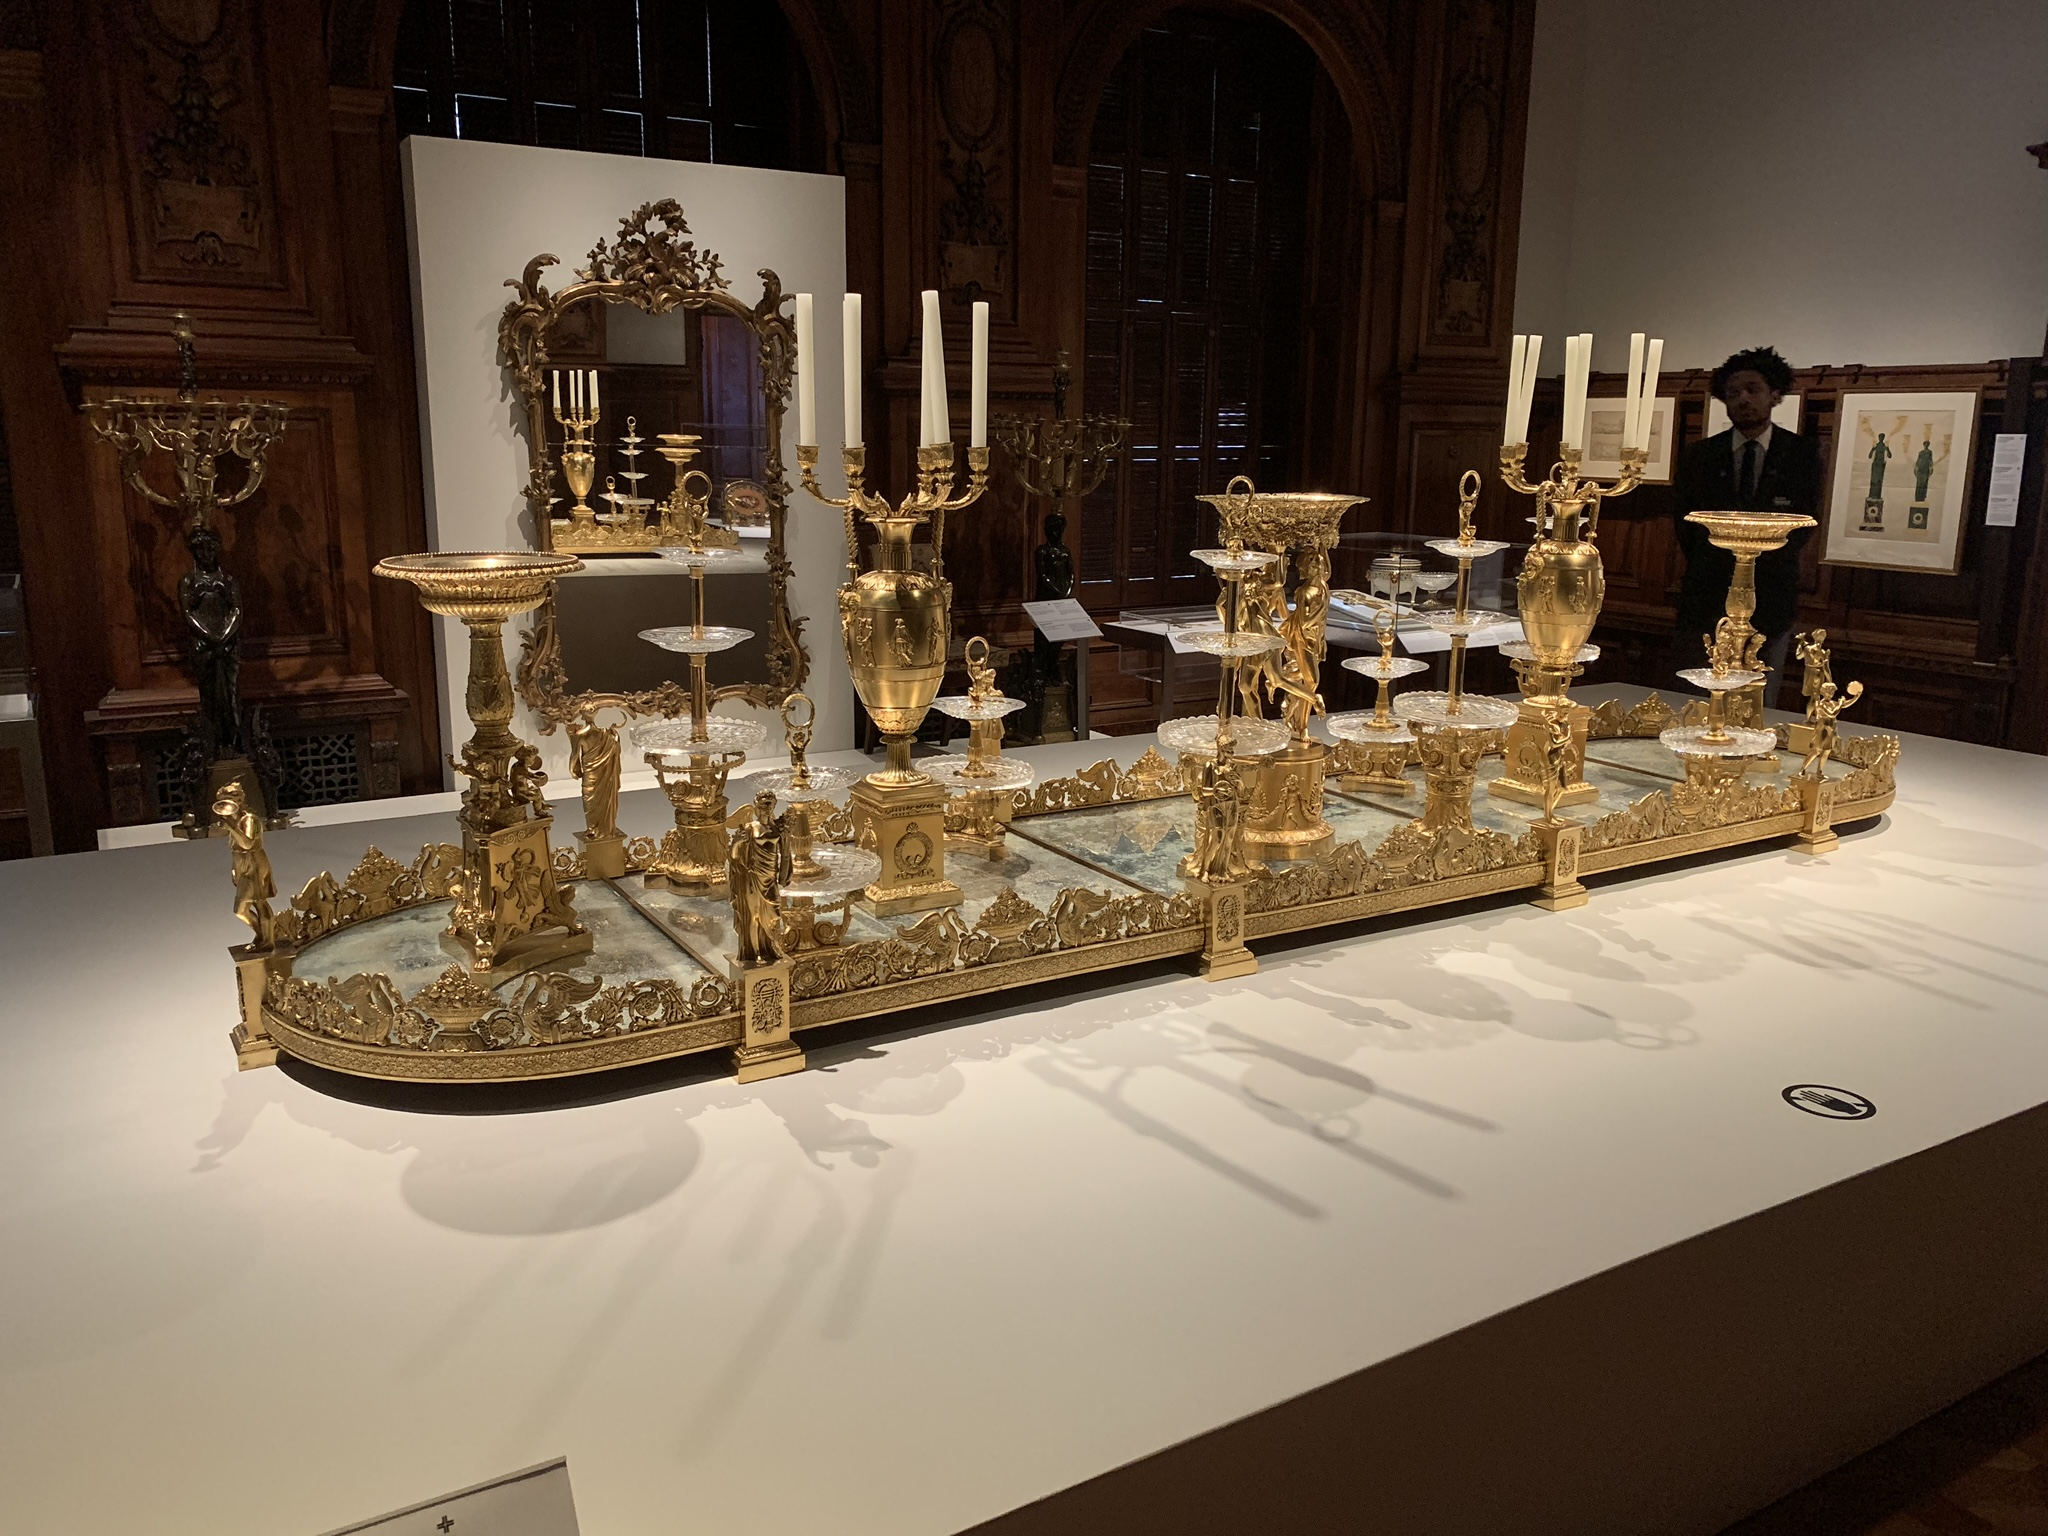 The stunning Thomire surtout de table, centerpiece of the Tablescapes exhibition. They stole my life!